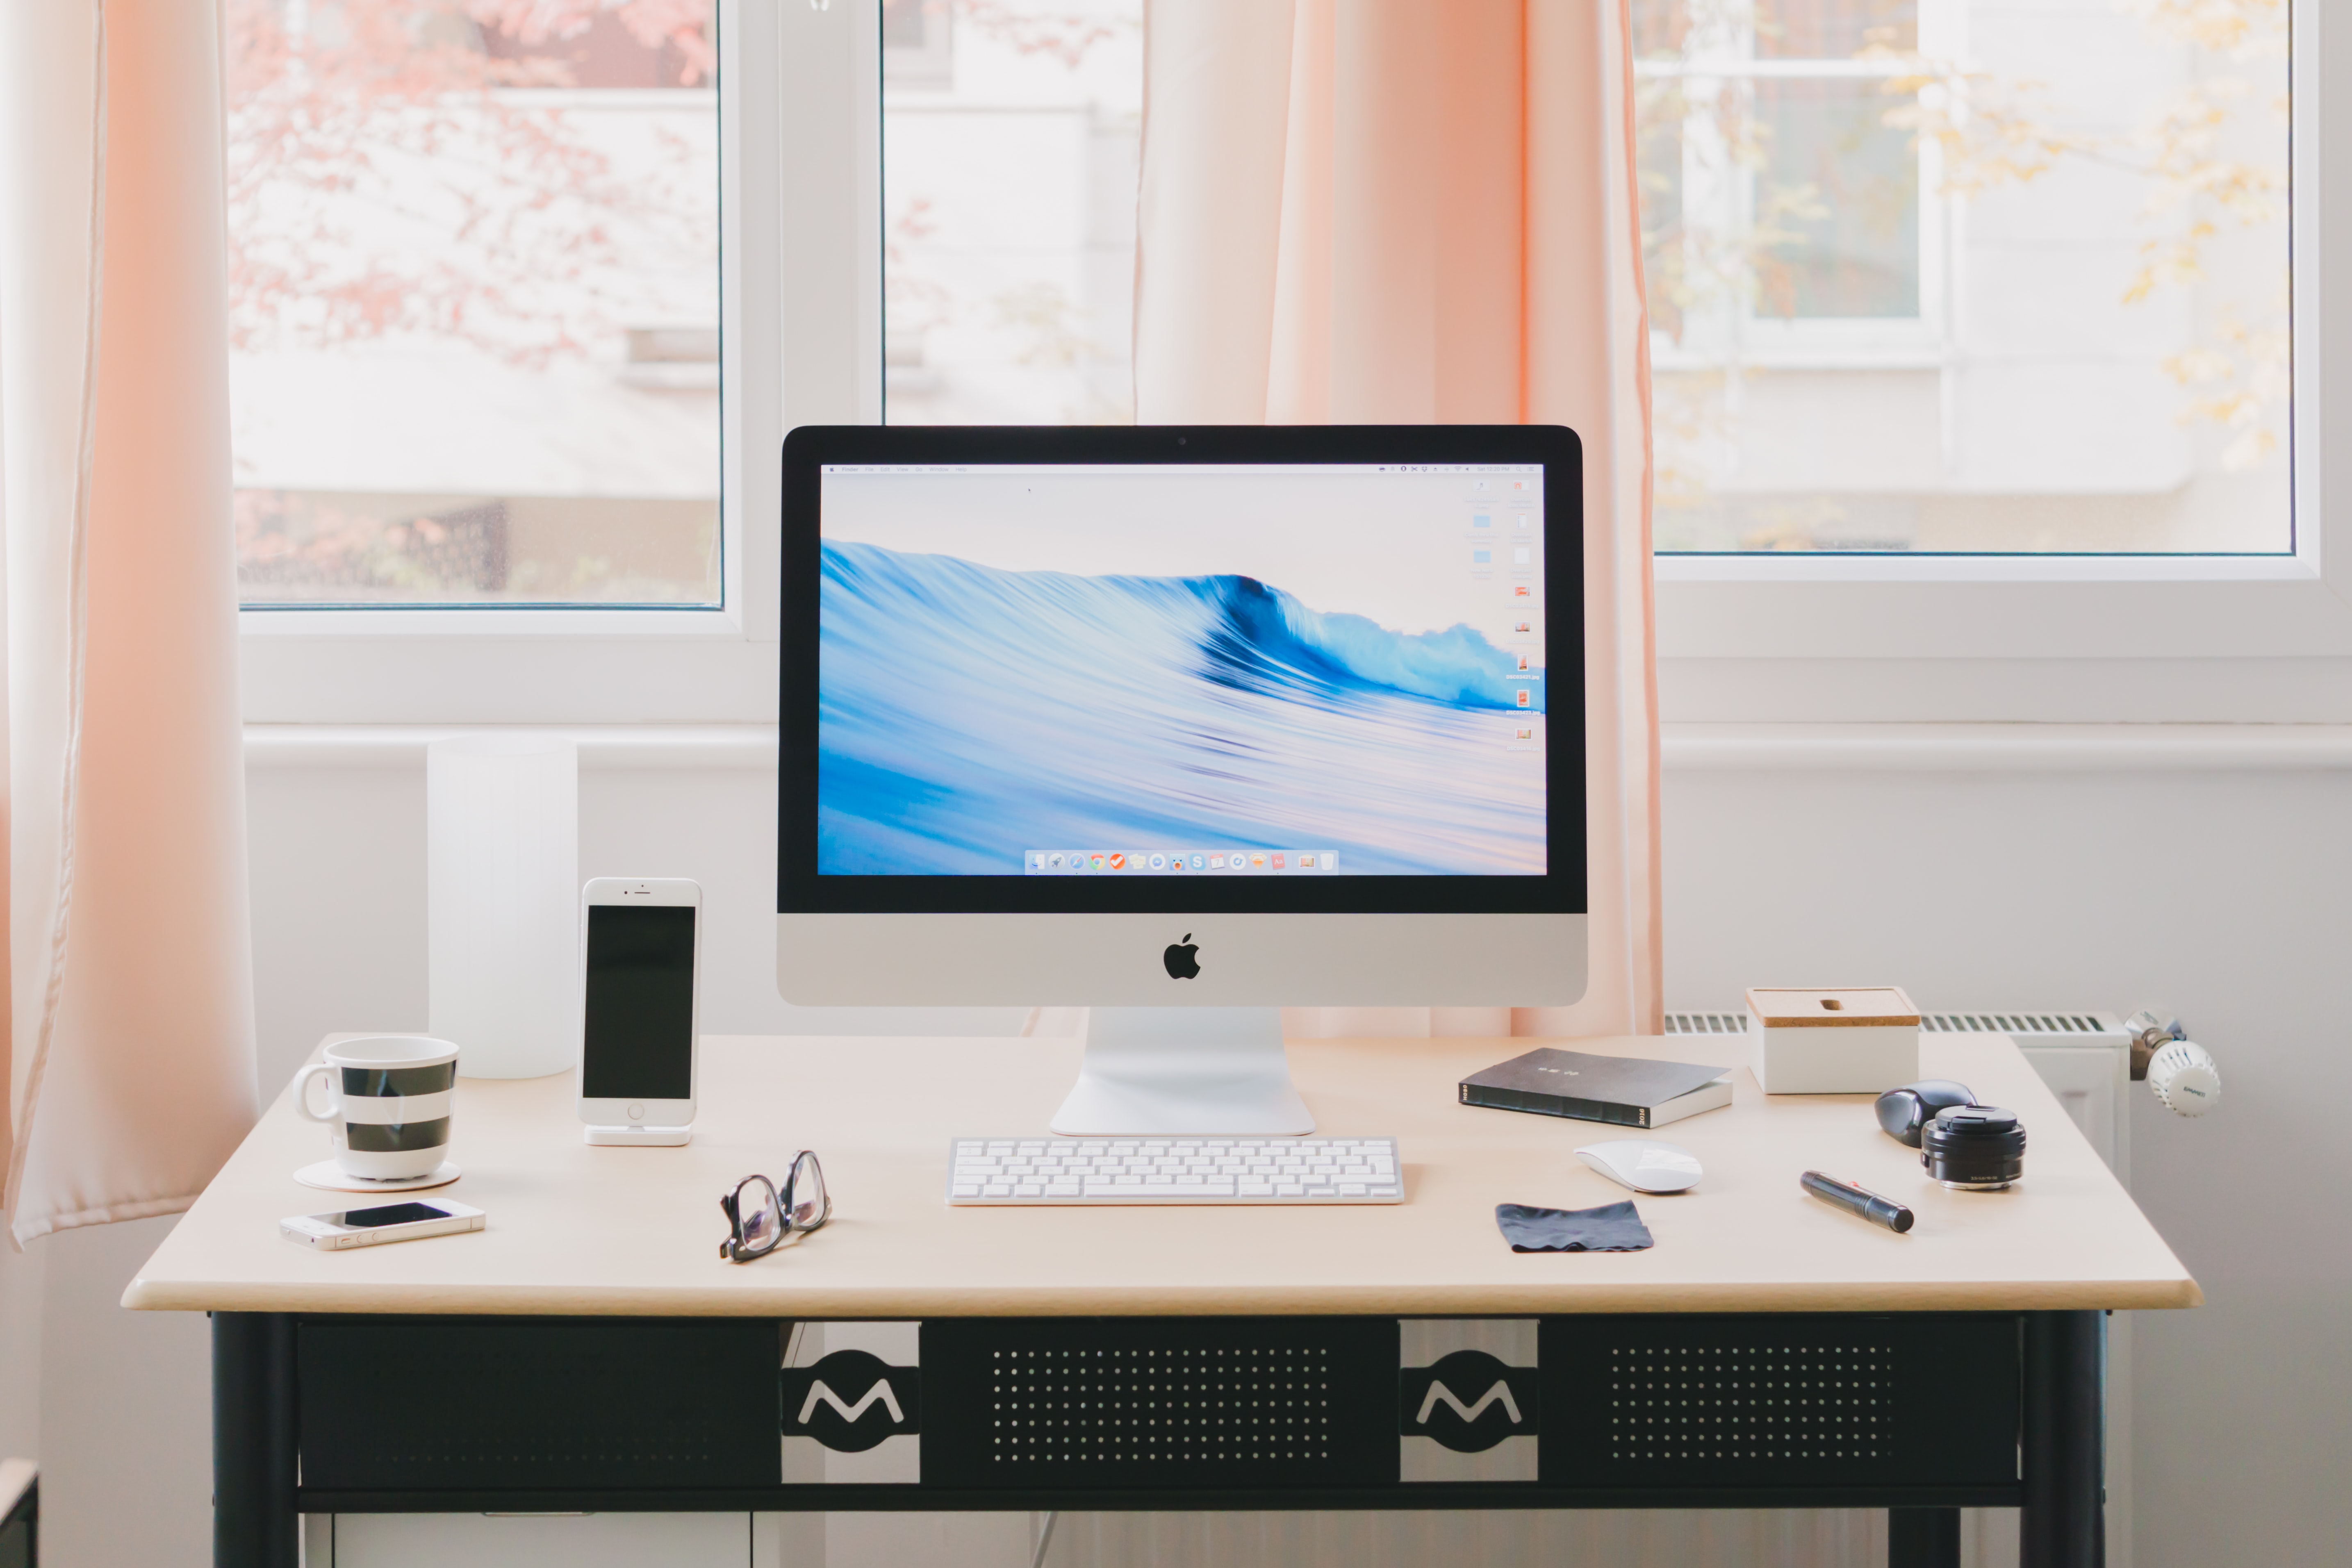 Monitors, keyboards, and mice are just a few of the home office items seeing growth during this time.